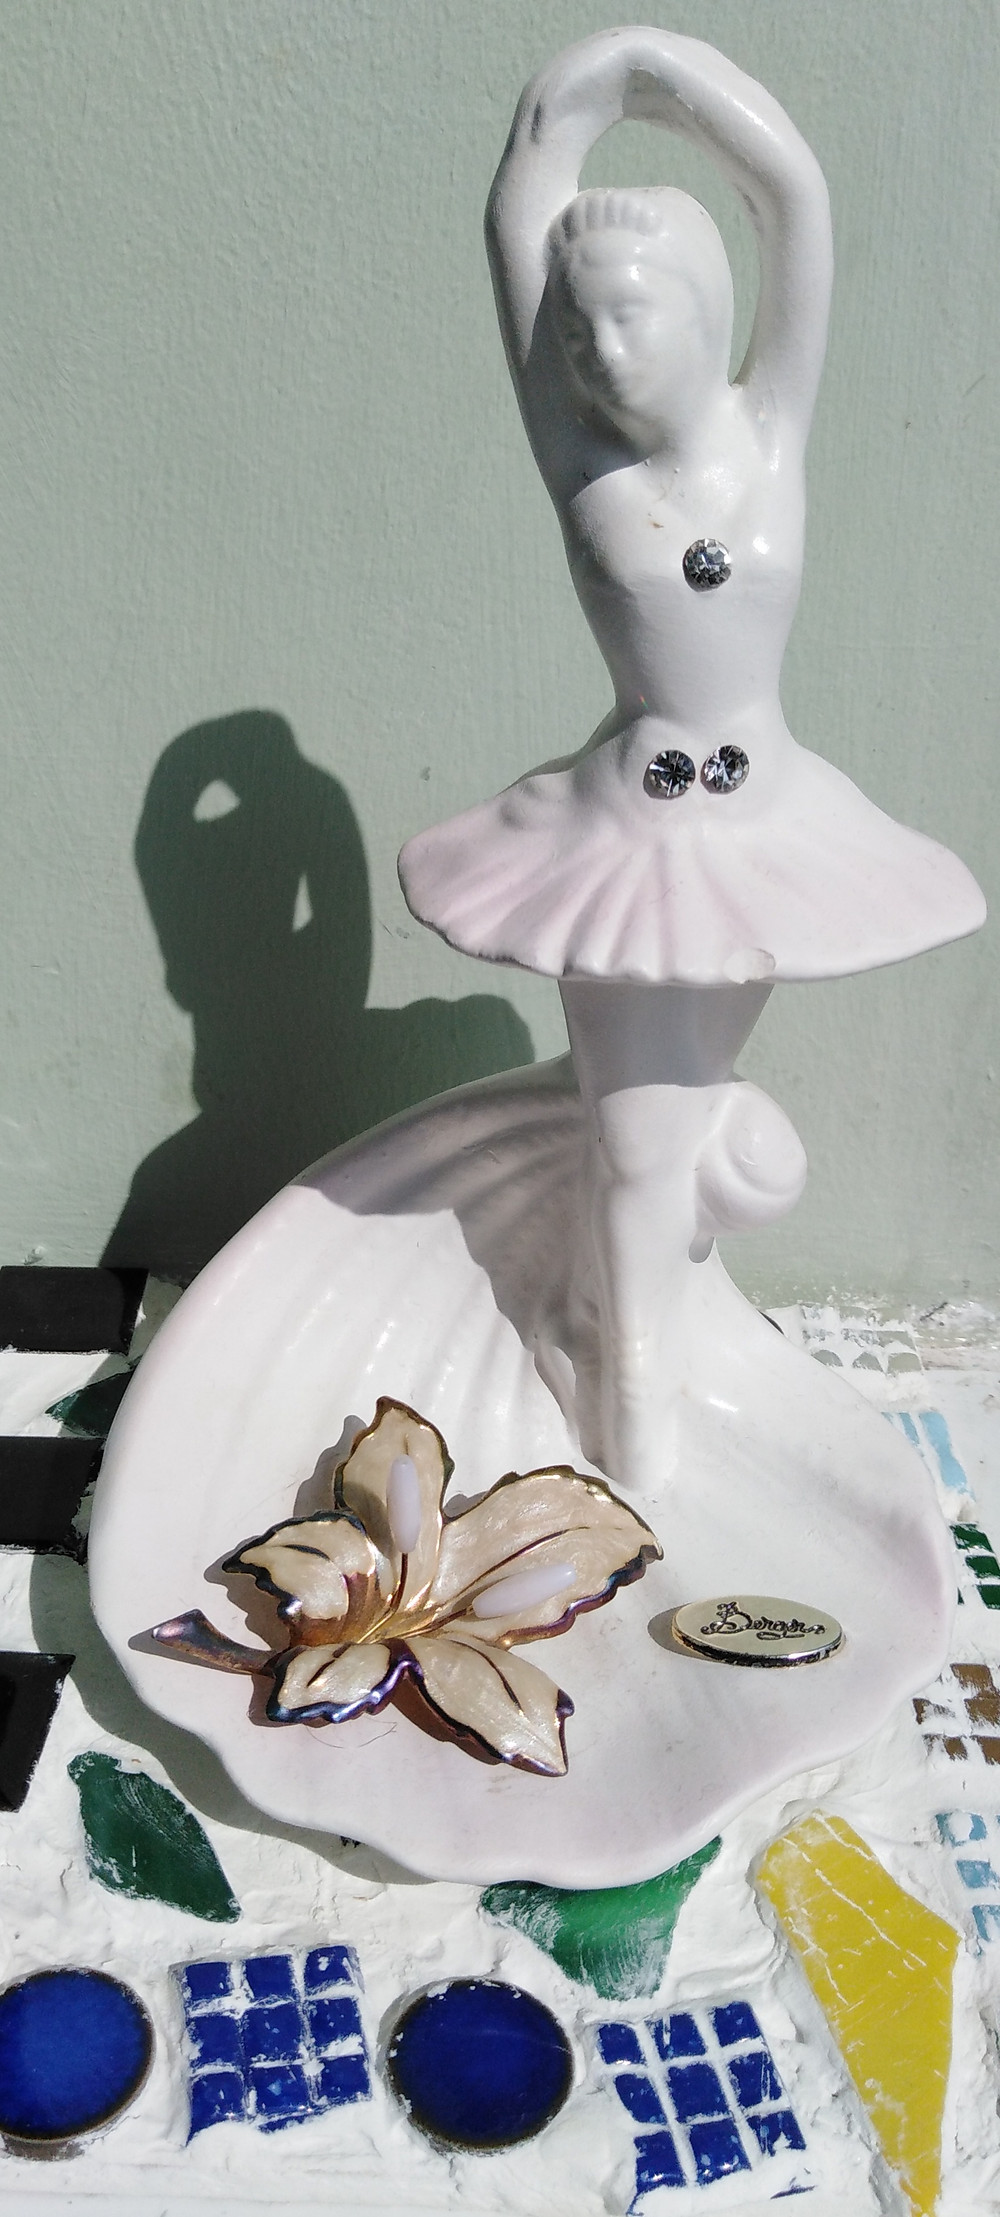 Twirling Ballerina depicting fluctuating markets